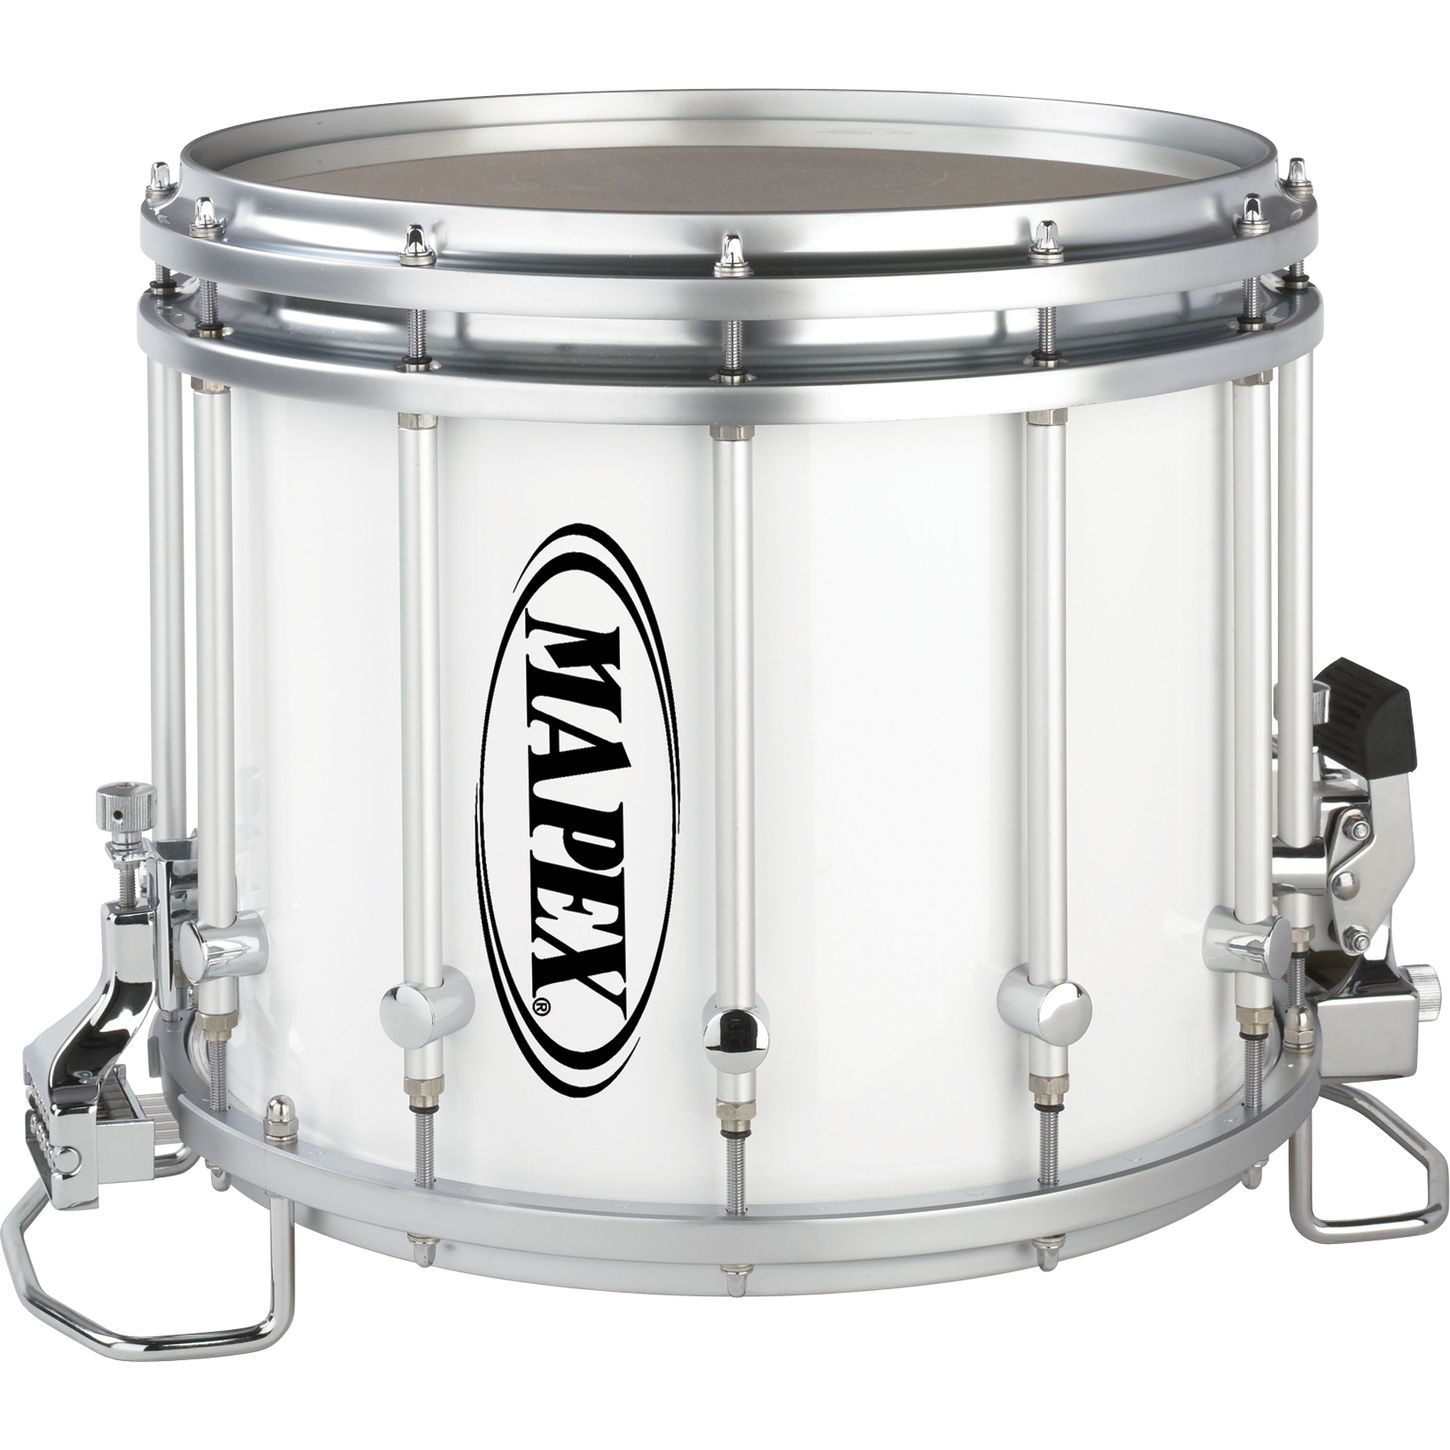 mapex quantum xt snare drum gray steel 14 x 12 in musician 39 s friend. Black Bedroom Furniture Sets. Home Design Ideas